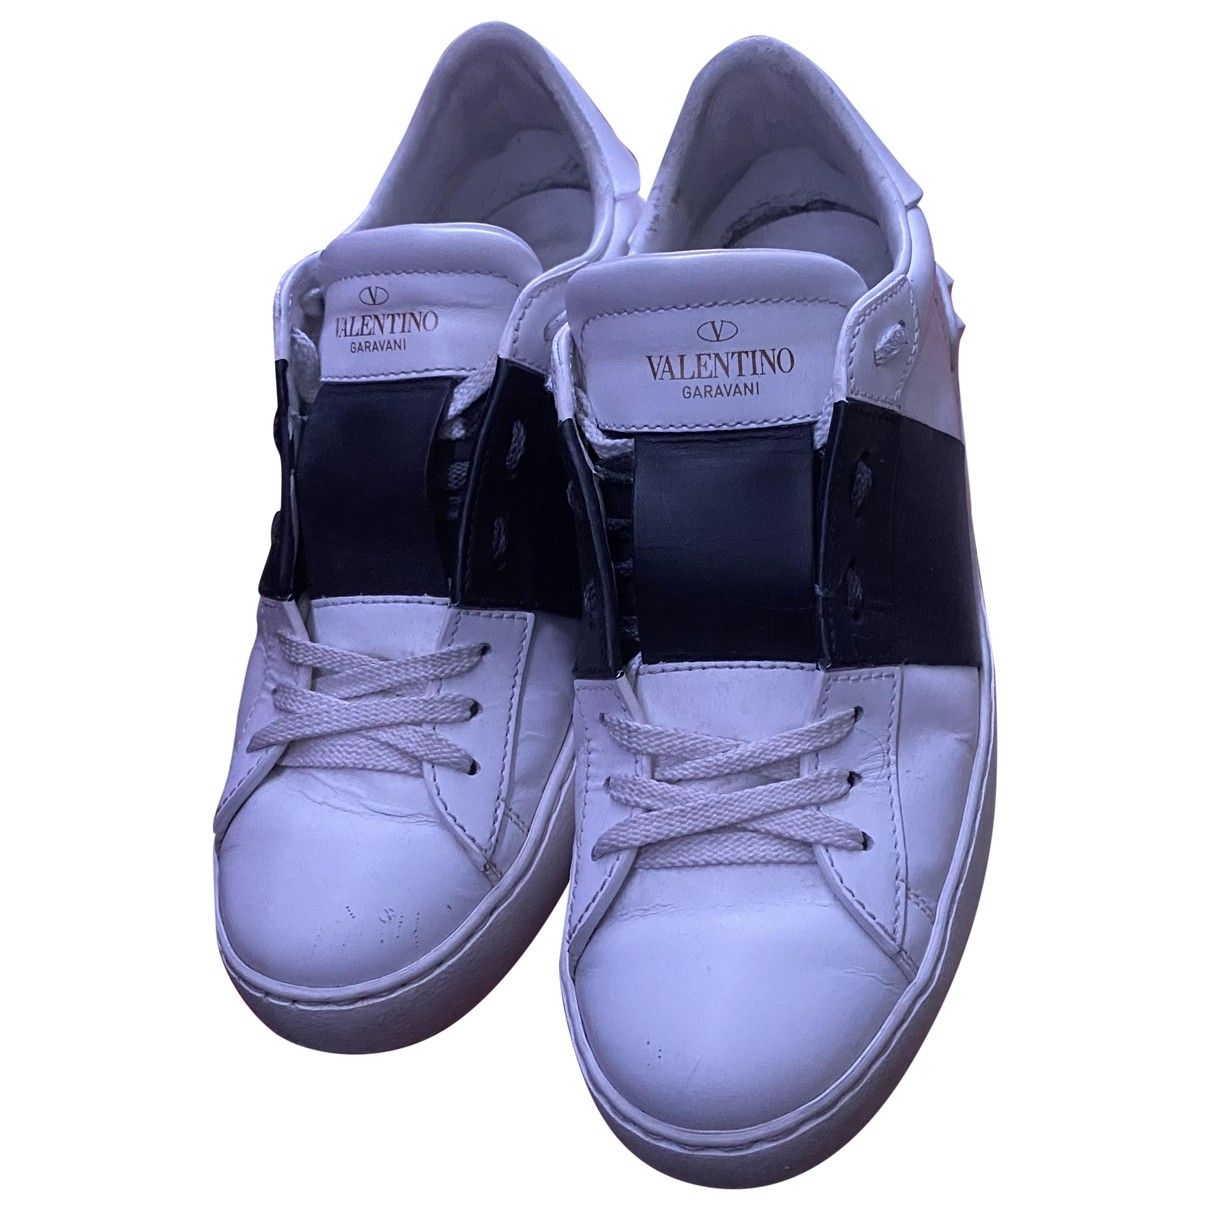 Valentino Garavani Rockstud White Leather Trainers for Women 37 EU